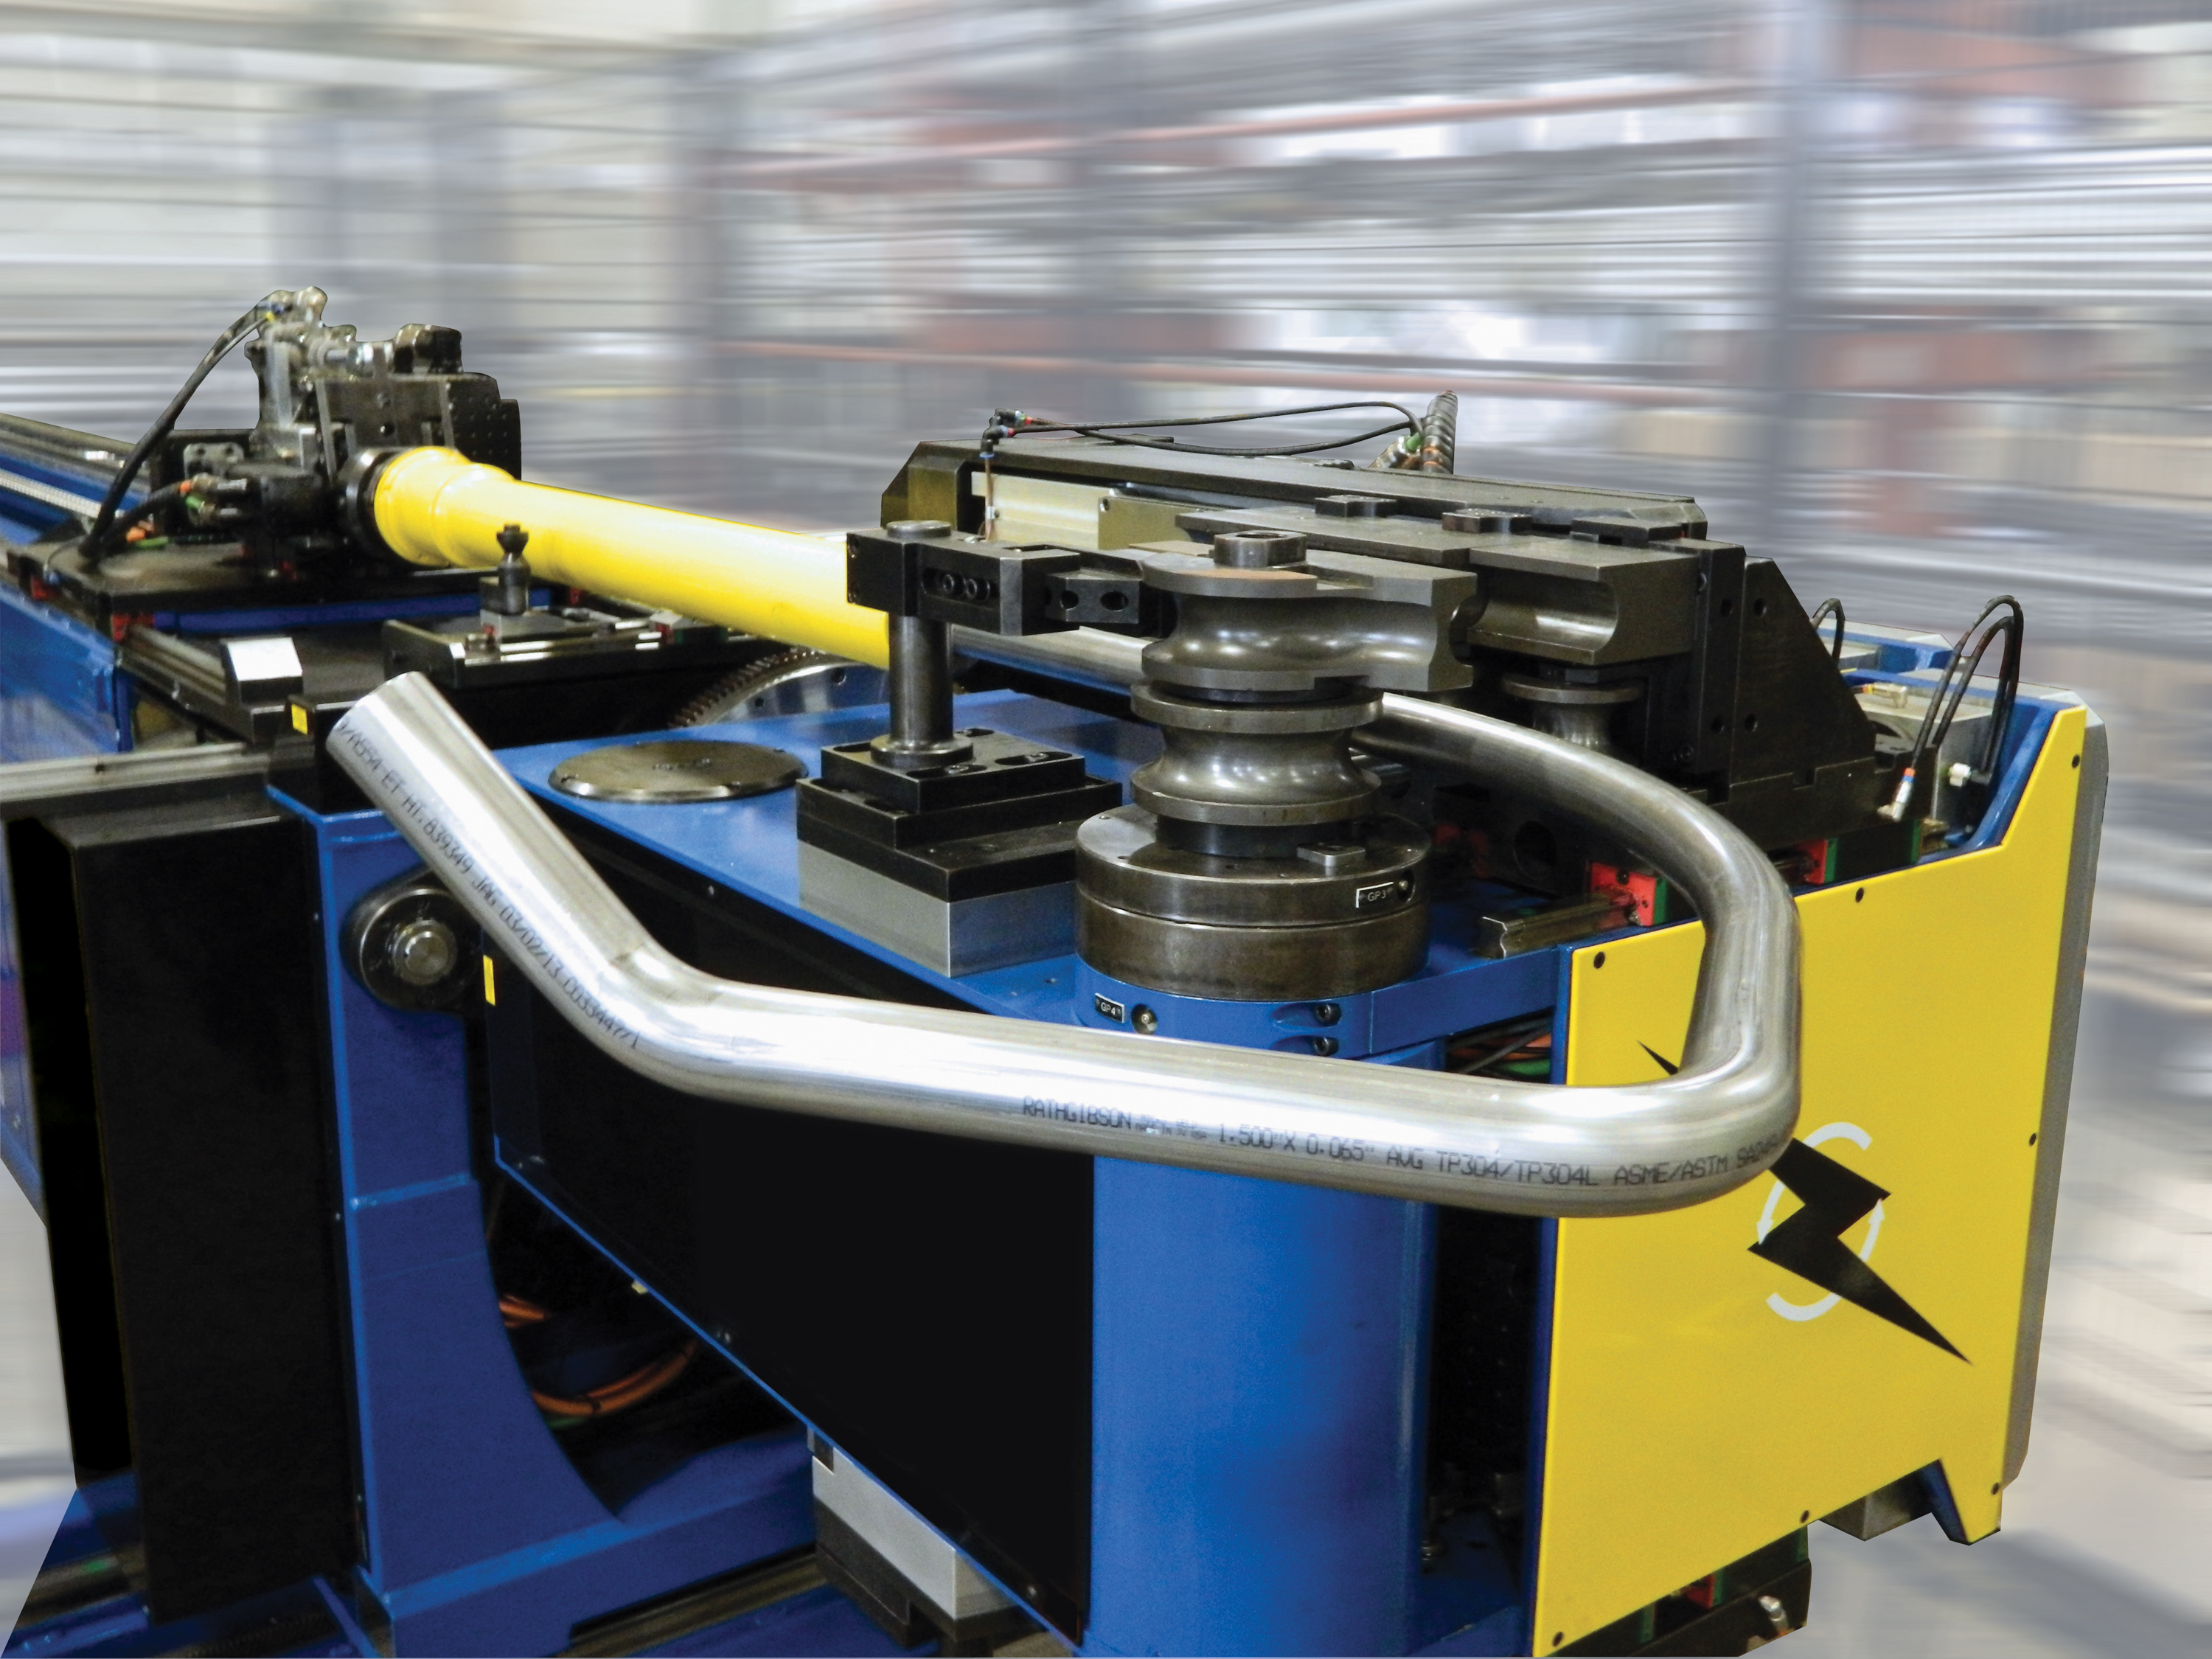 Rotating-Head Bending Replaces Hydraulic Benders & Old Fashioned Cnc Wire Bender Image - The Wire - magnox.info